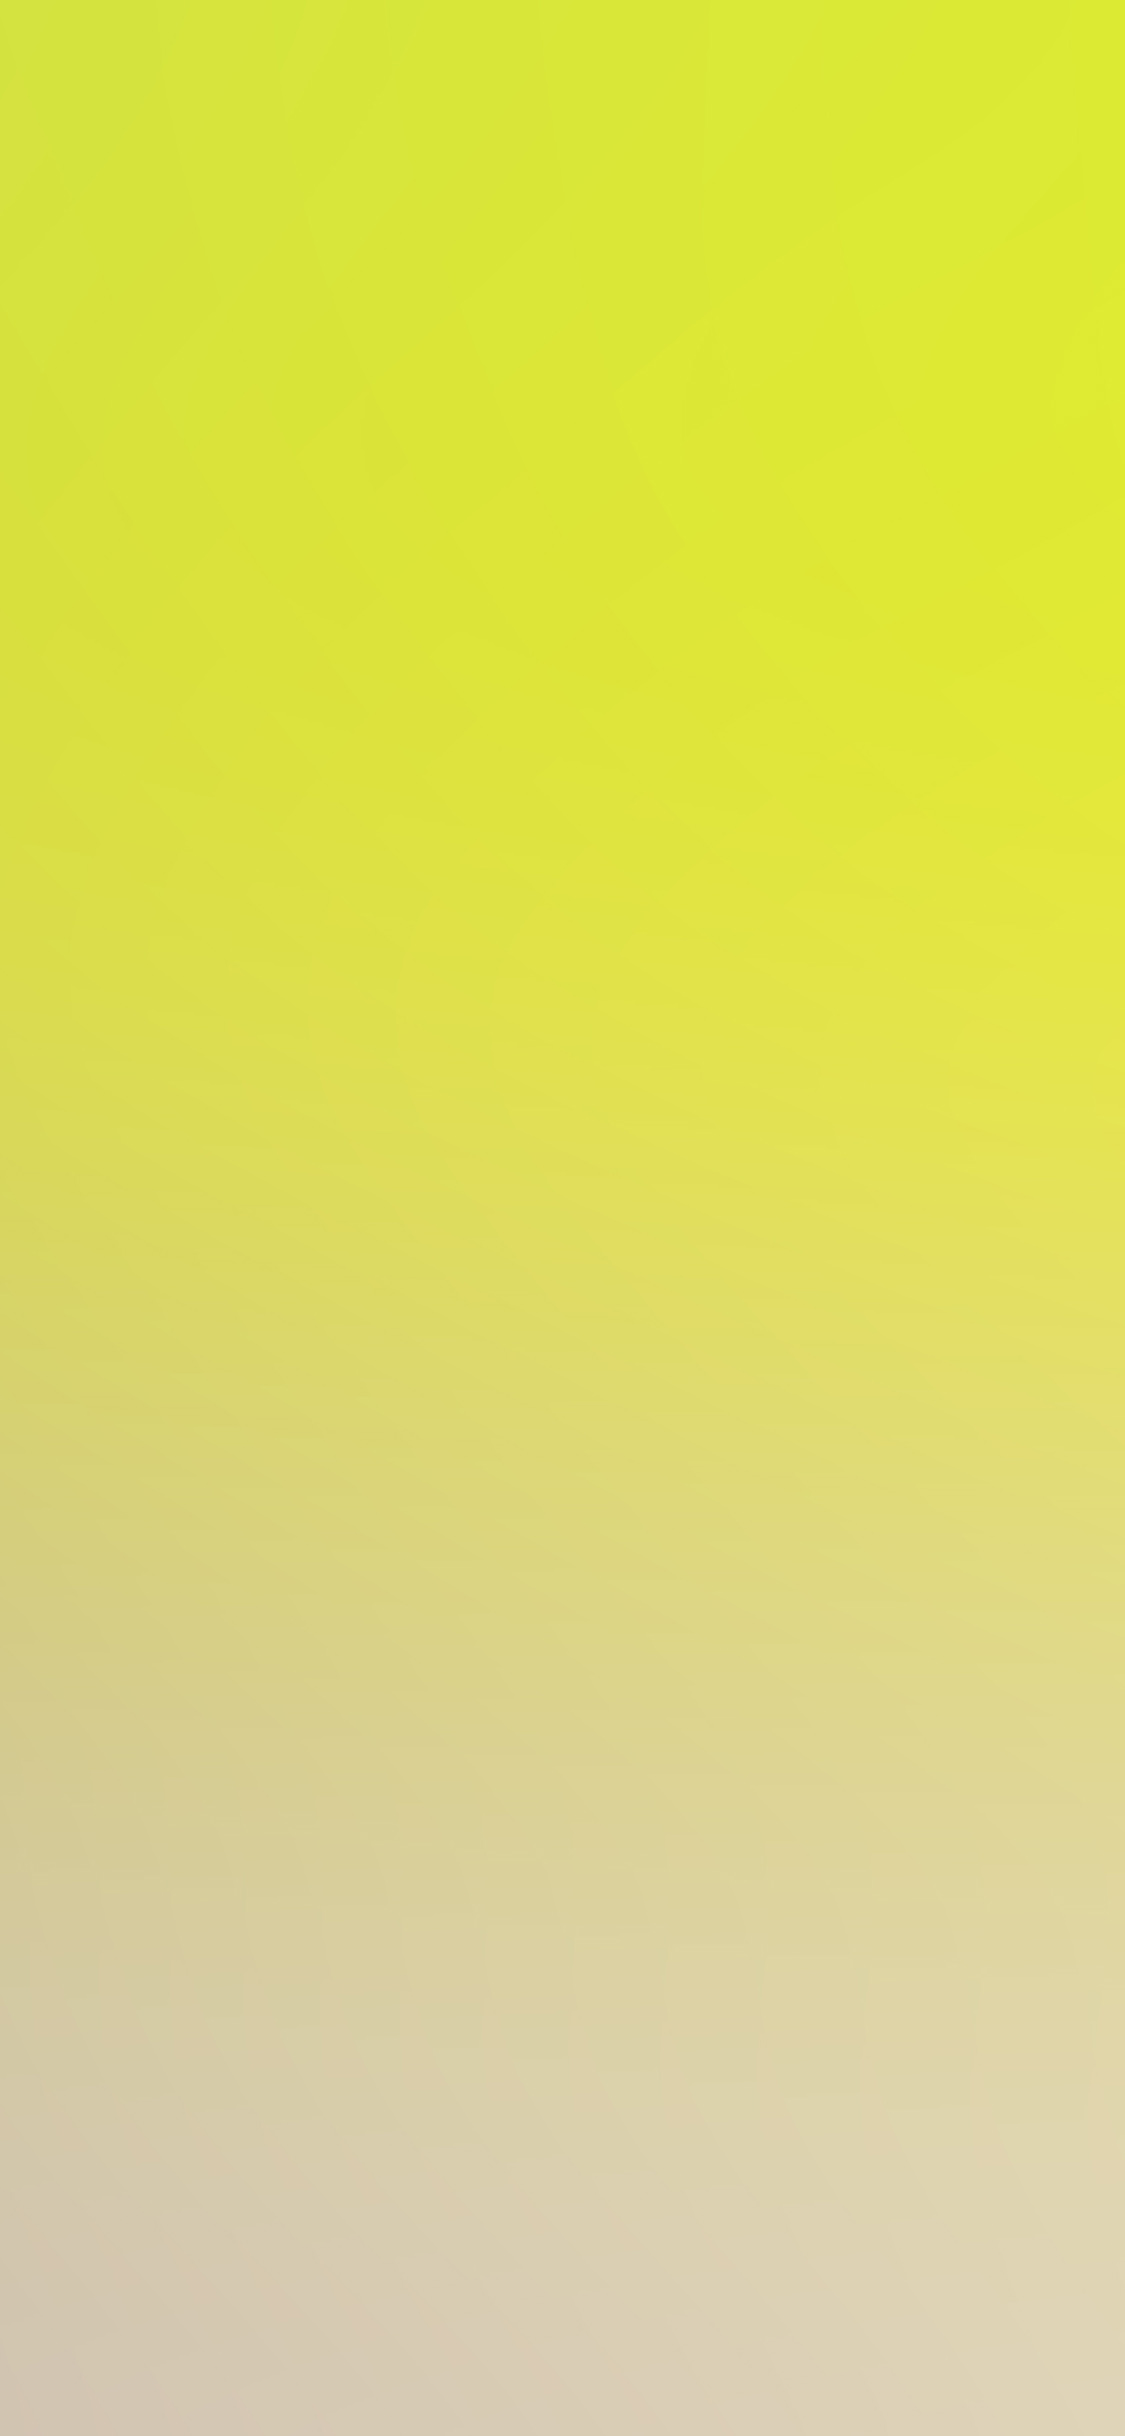 iPhoneXpapers.com-Apple-iPhone-wallpaper-si59-lemon-yellow-gradation-blur